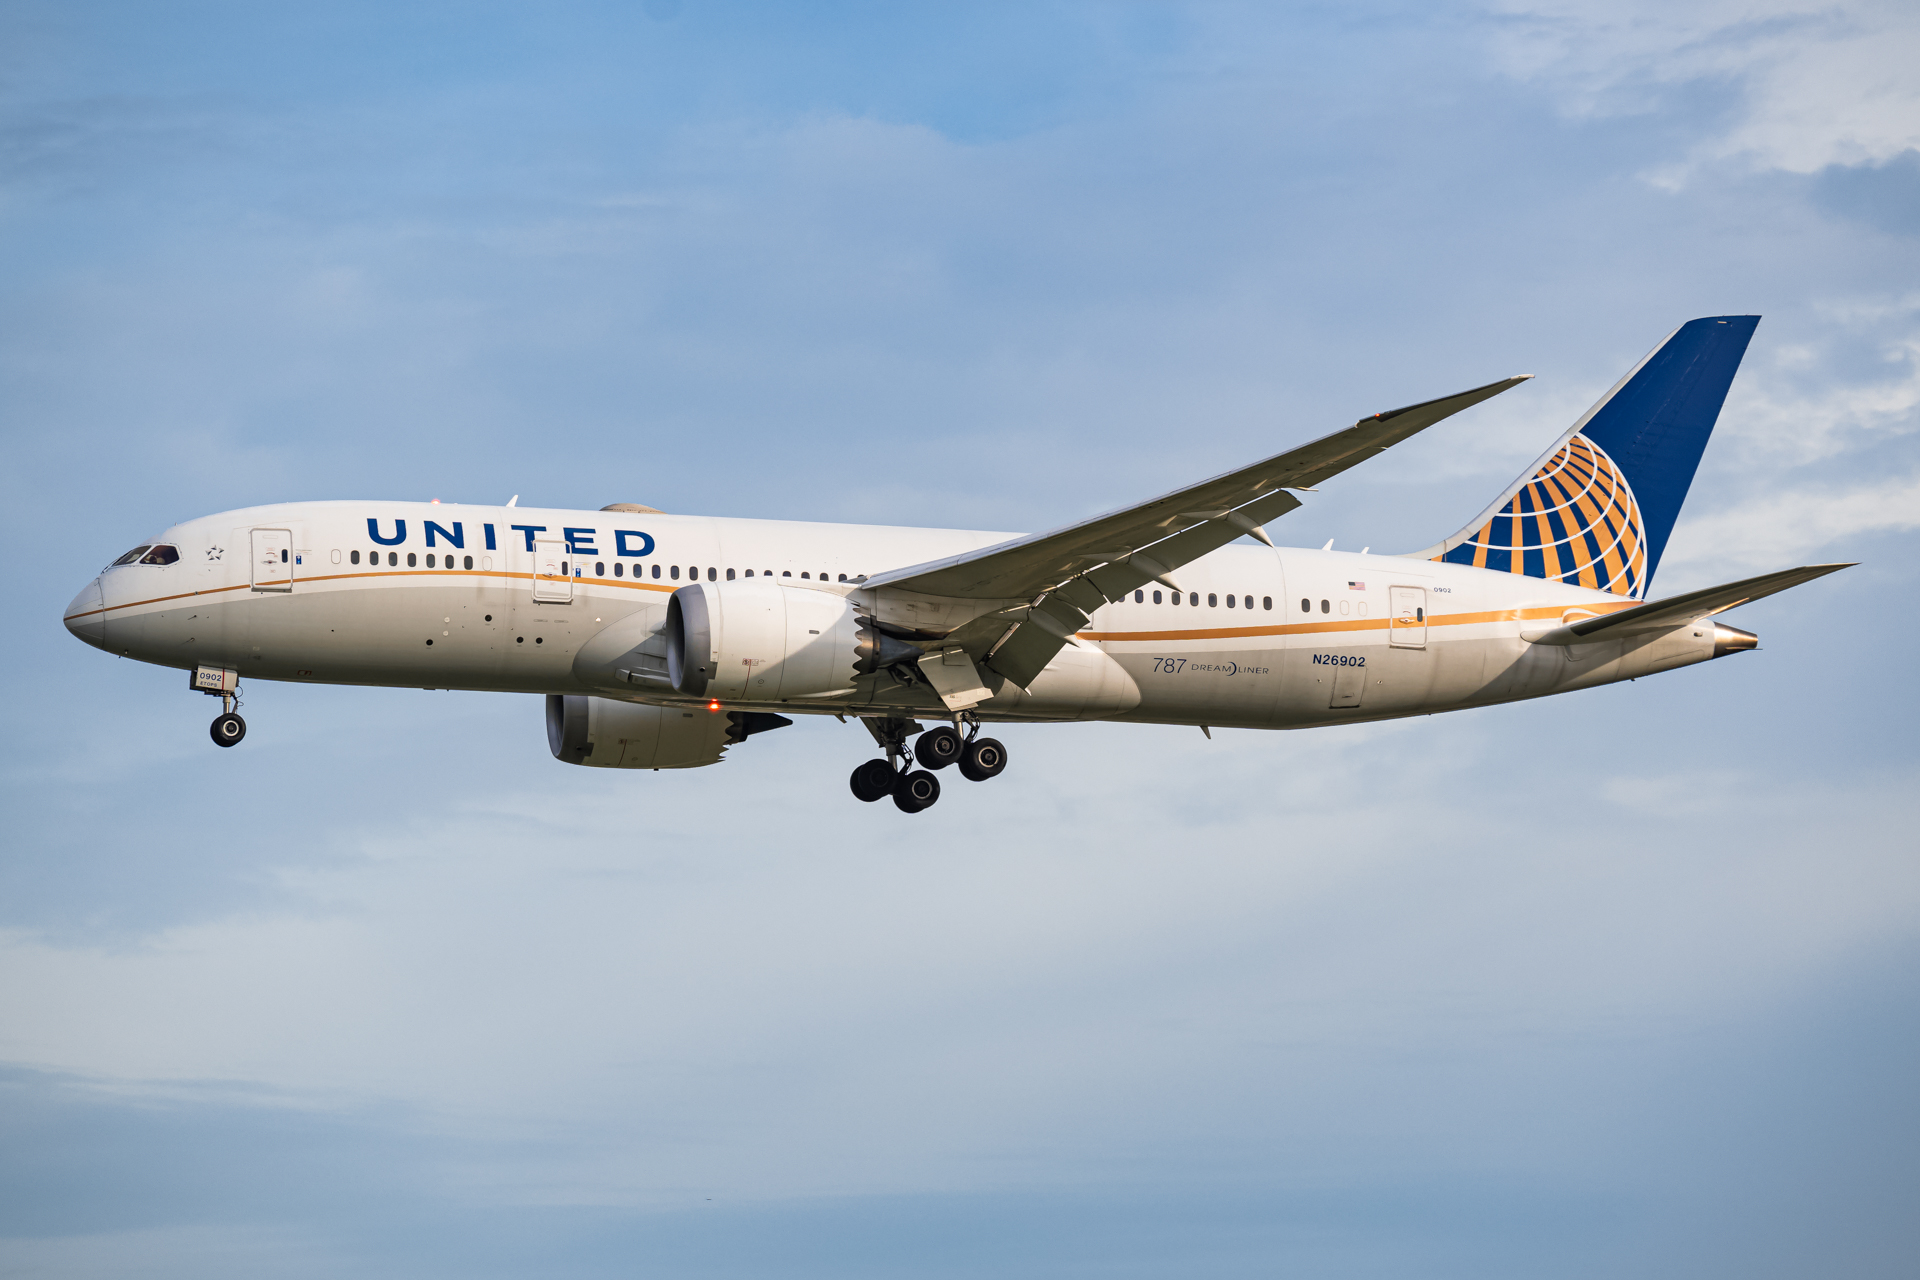 Photo of N26902 - United Airlines Boeing 787-8 at SIN